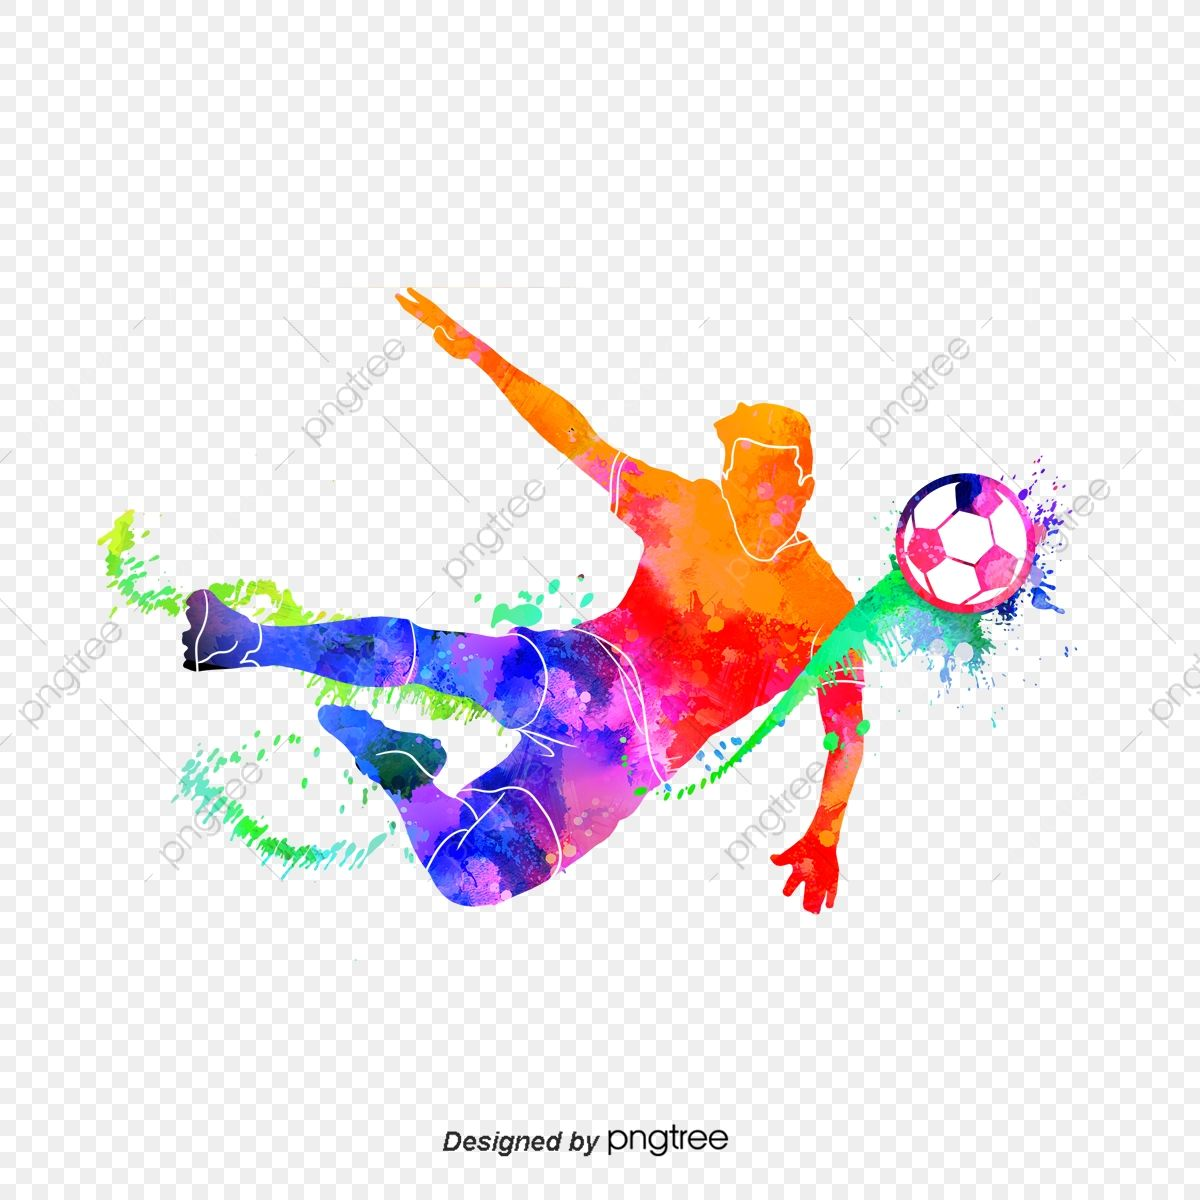 Silhouette Of Mens Creative Football Players Football Multicolored Sports Png Transparent Clipart Image And Psd File For Free Download Clipart Images Football Players Graphic Resources